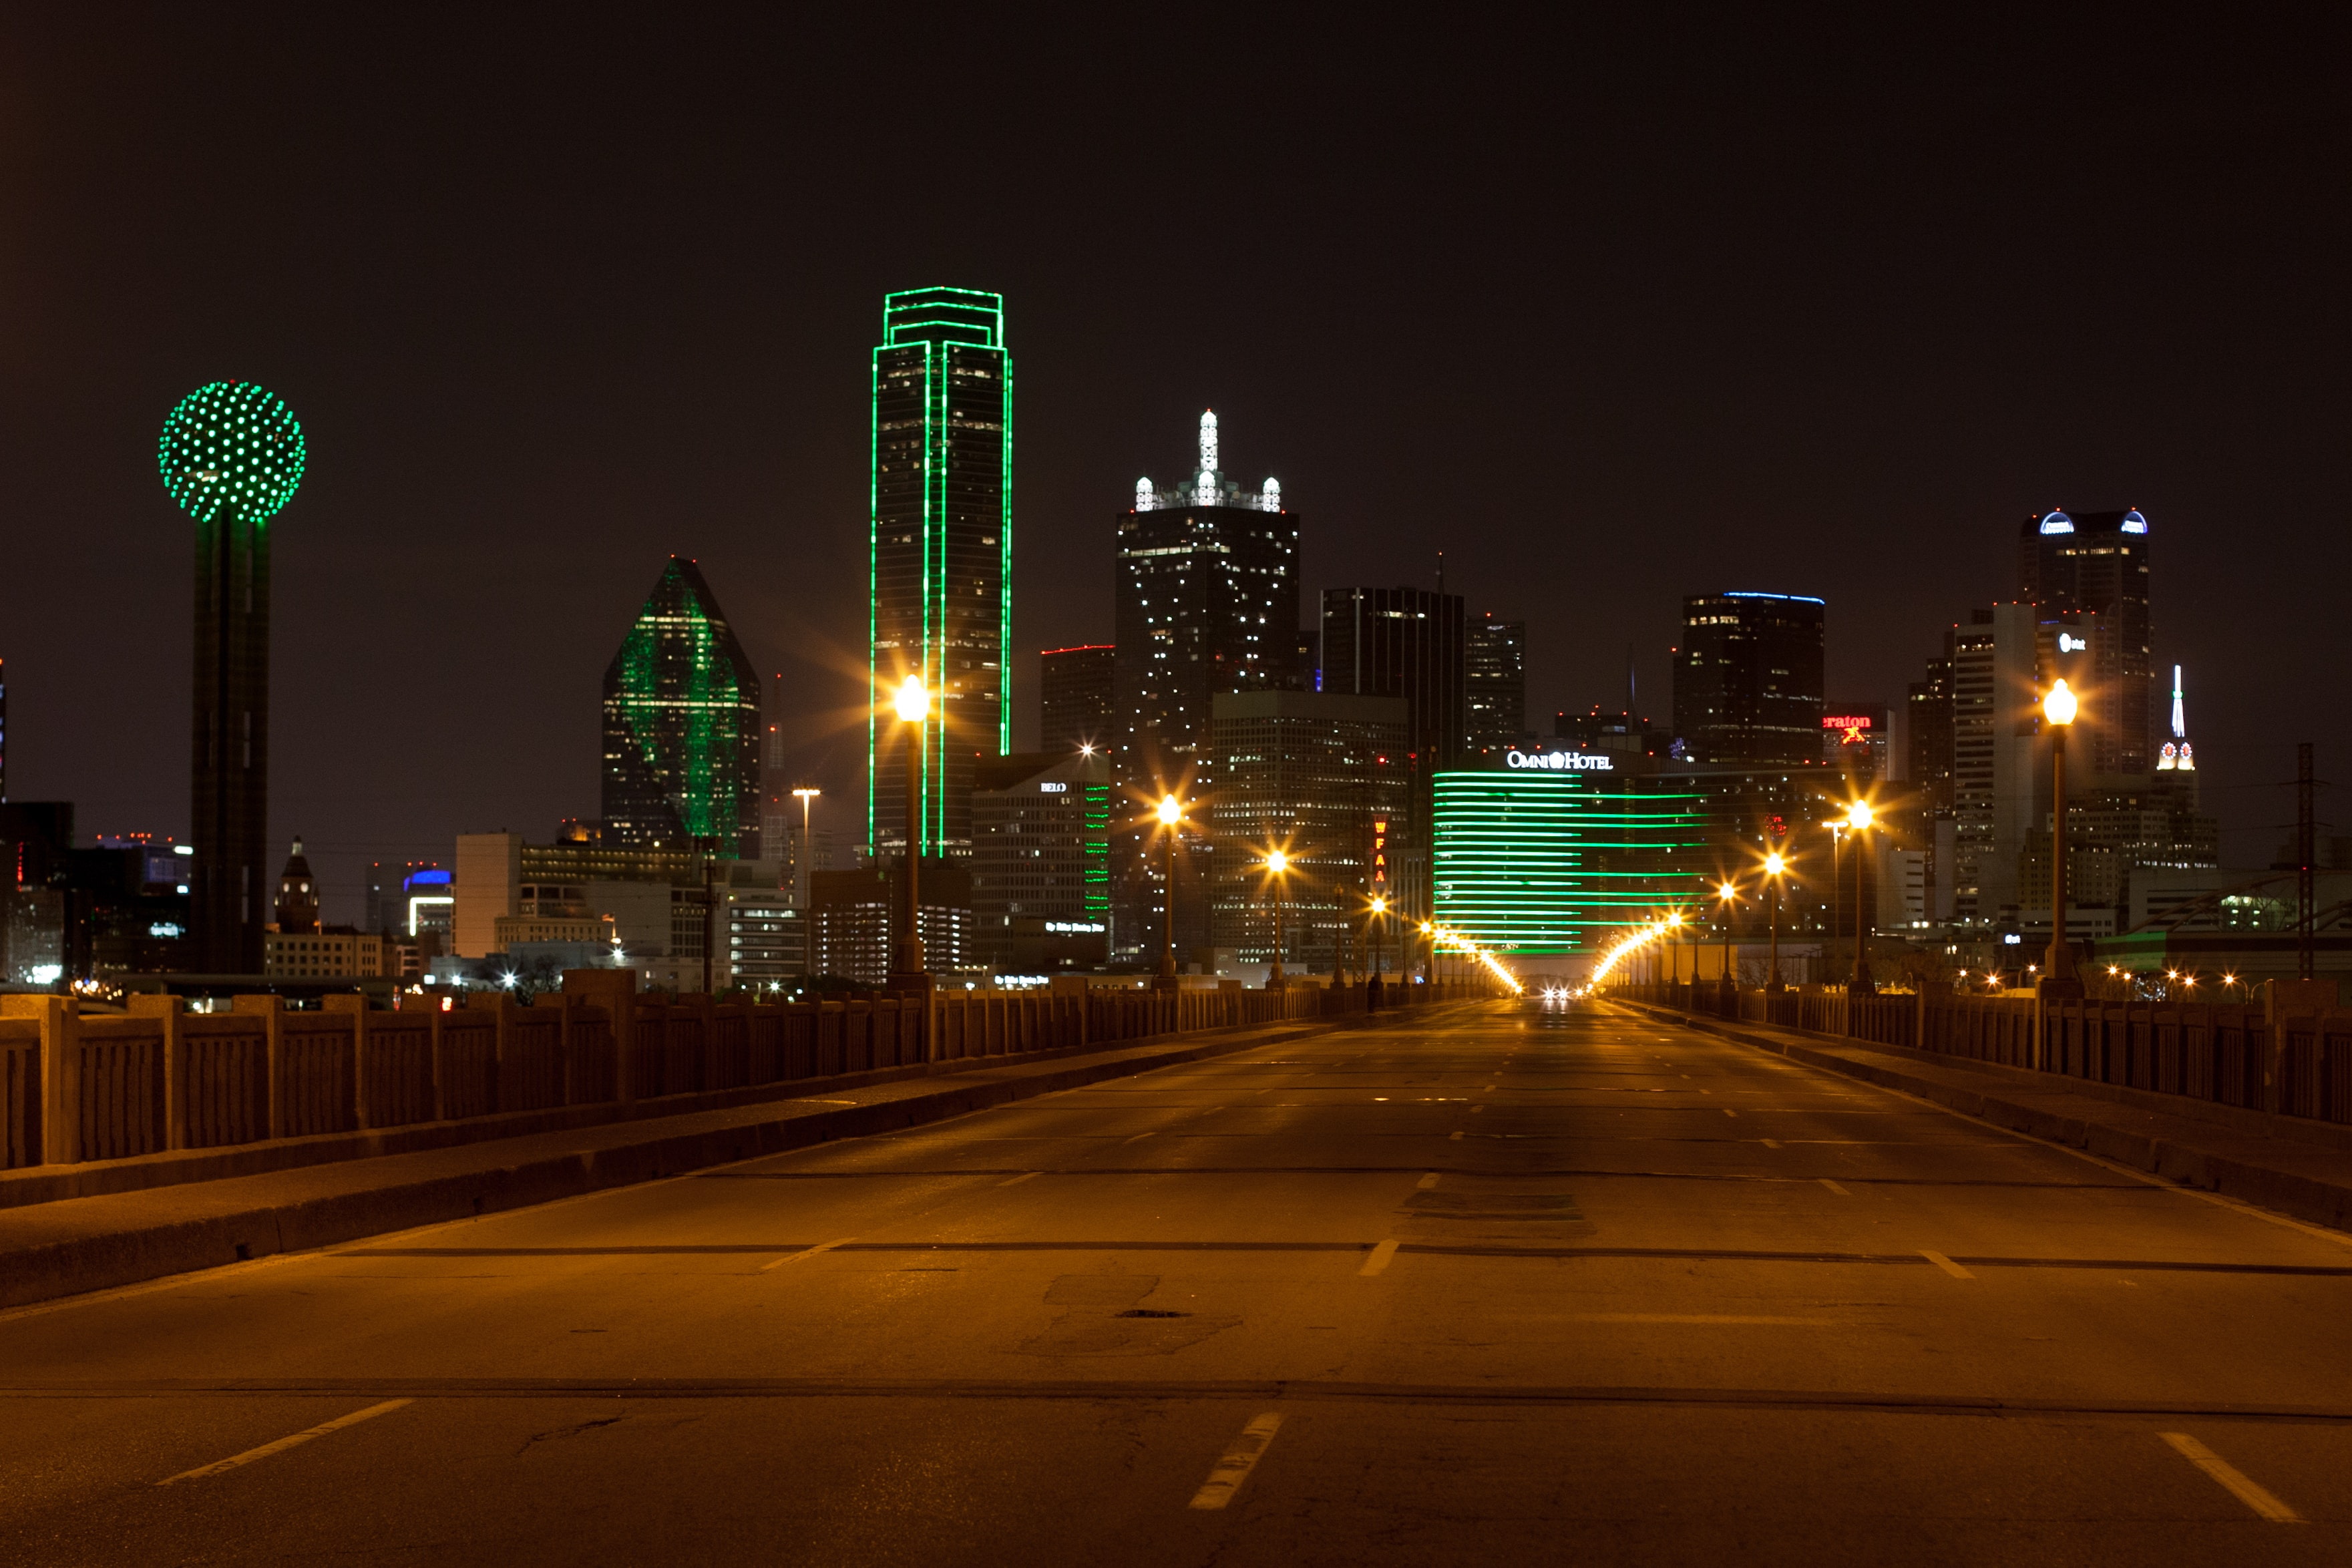 Dallas Widescreen for desktop